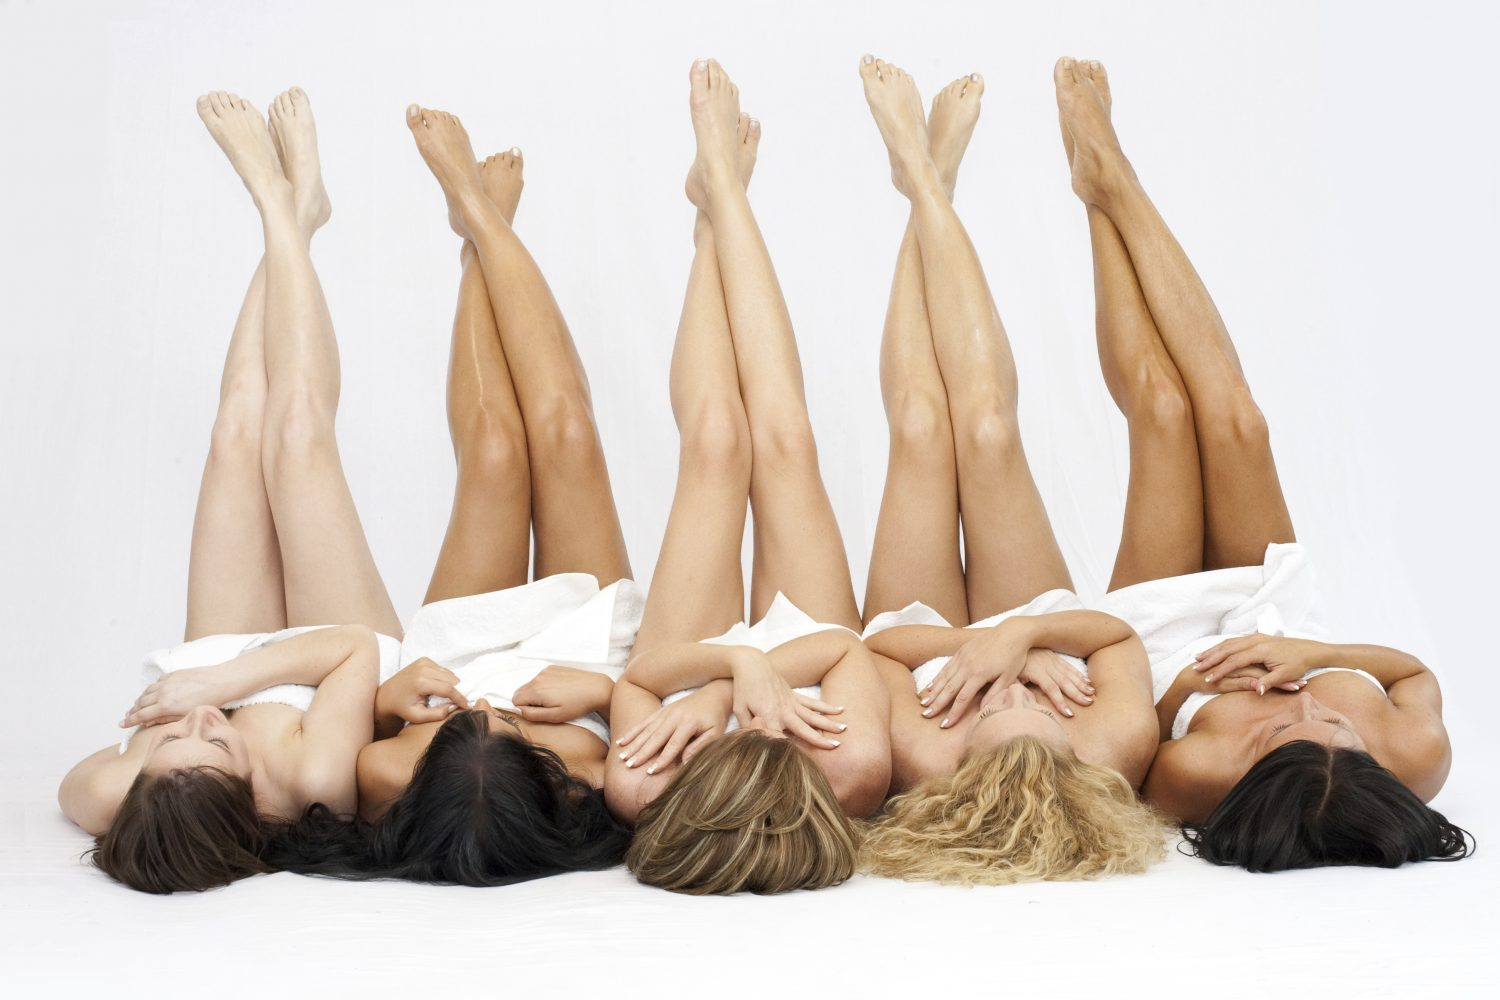 Laser-Hair-Removal-For-Women-e1490704120845.jpg